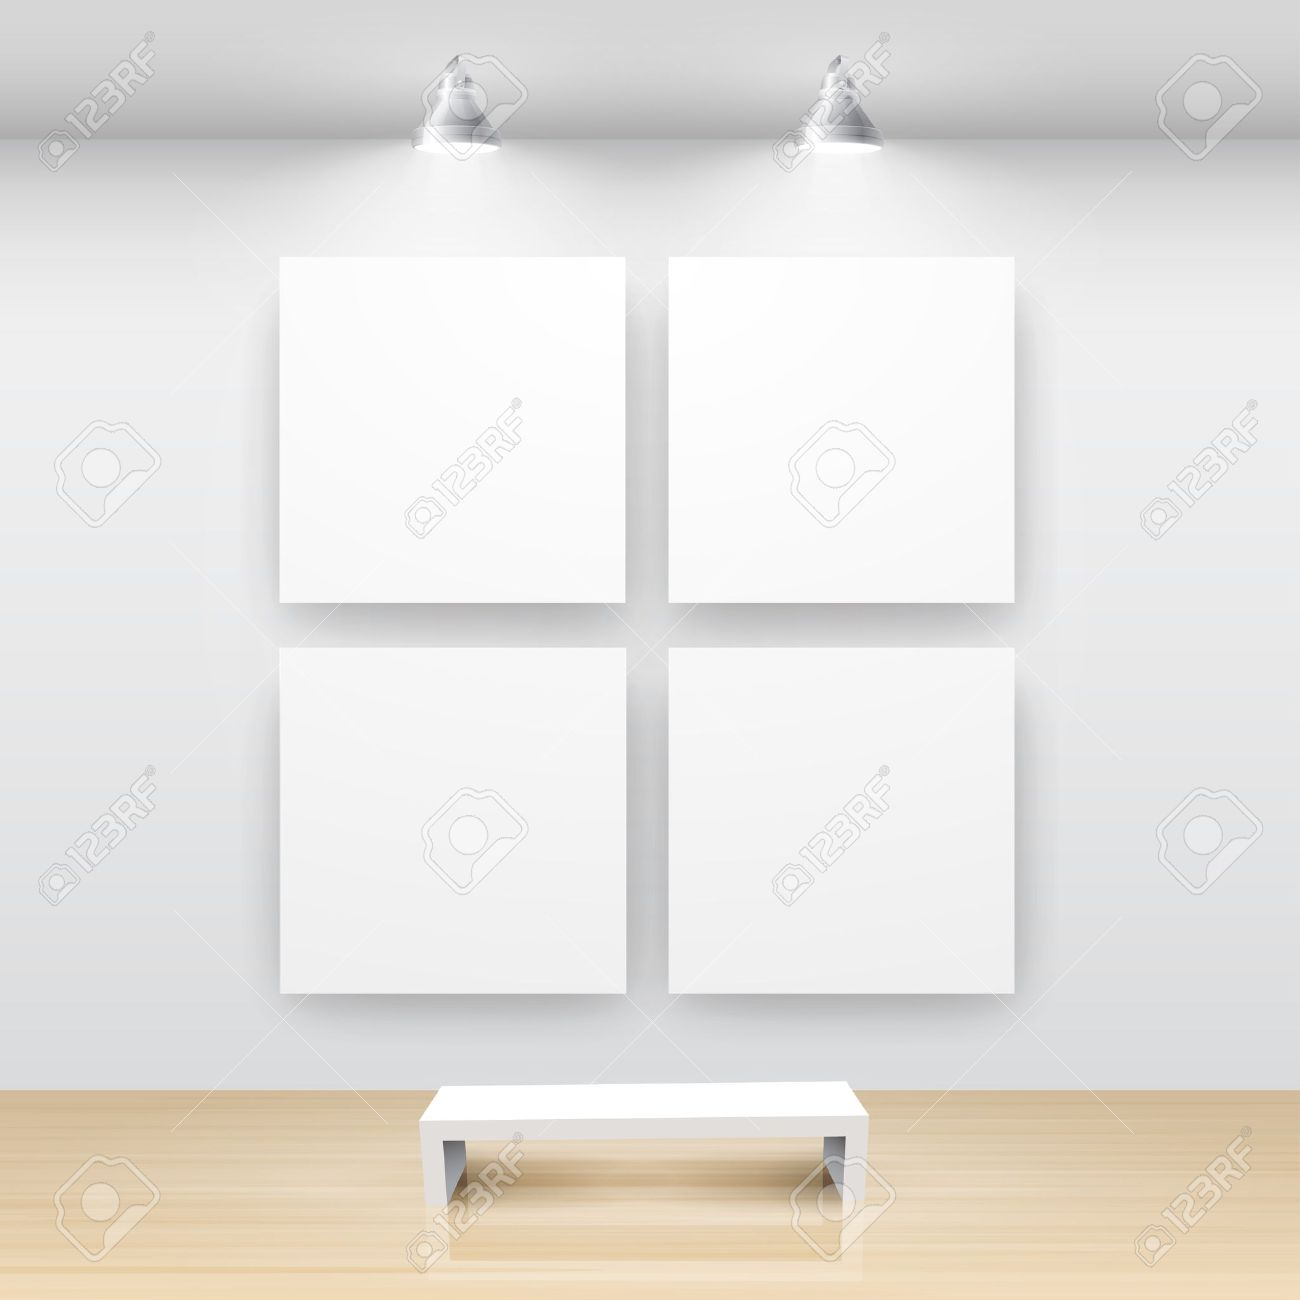 Gallery Interior with empty frame on wall - 9316195